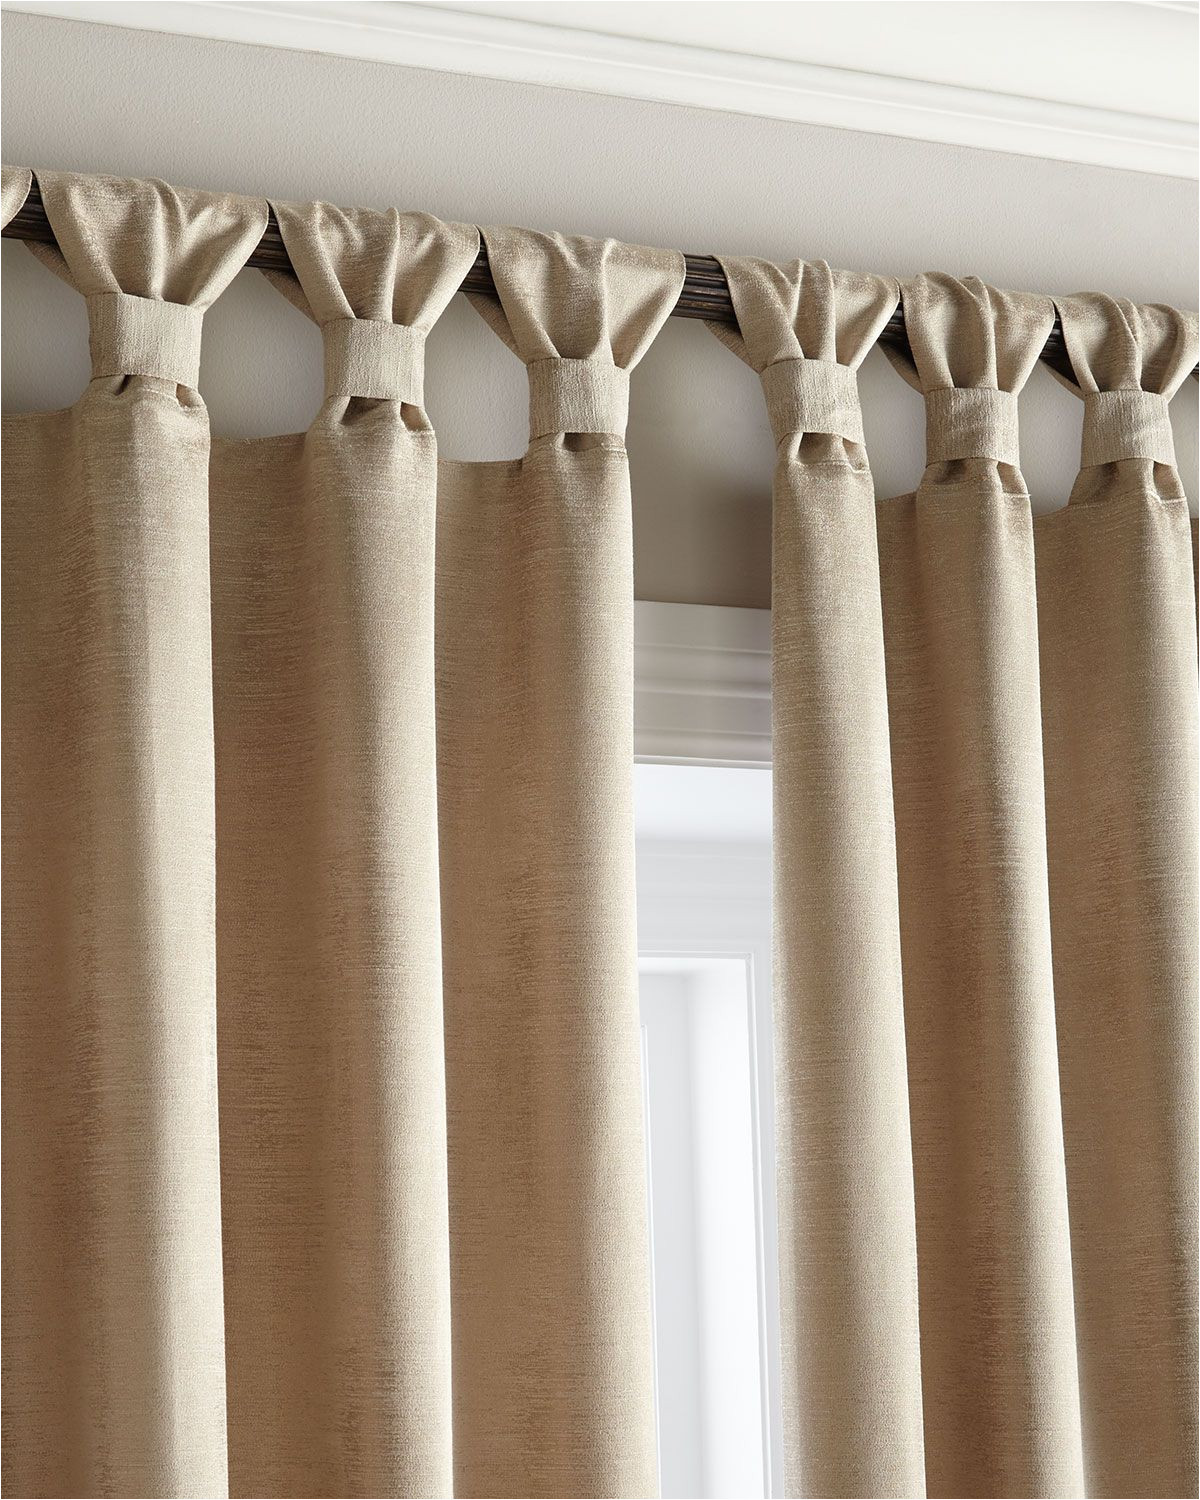 tab curtains a little different more